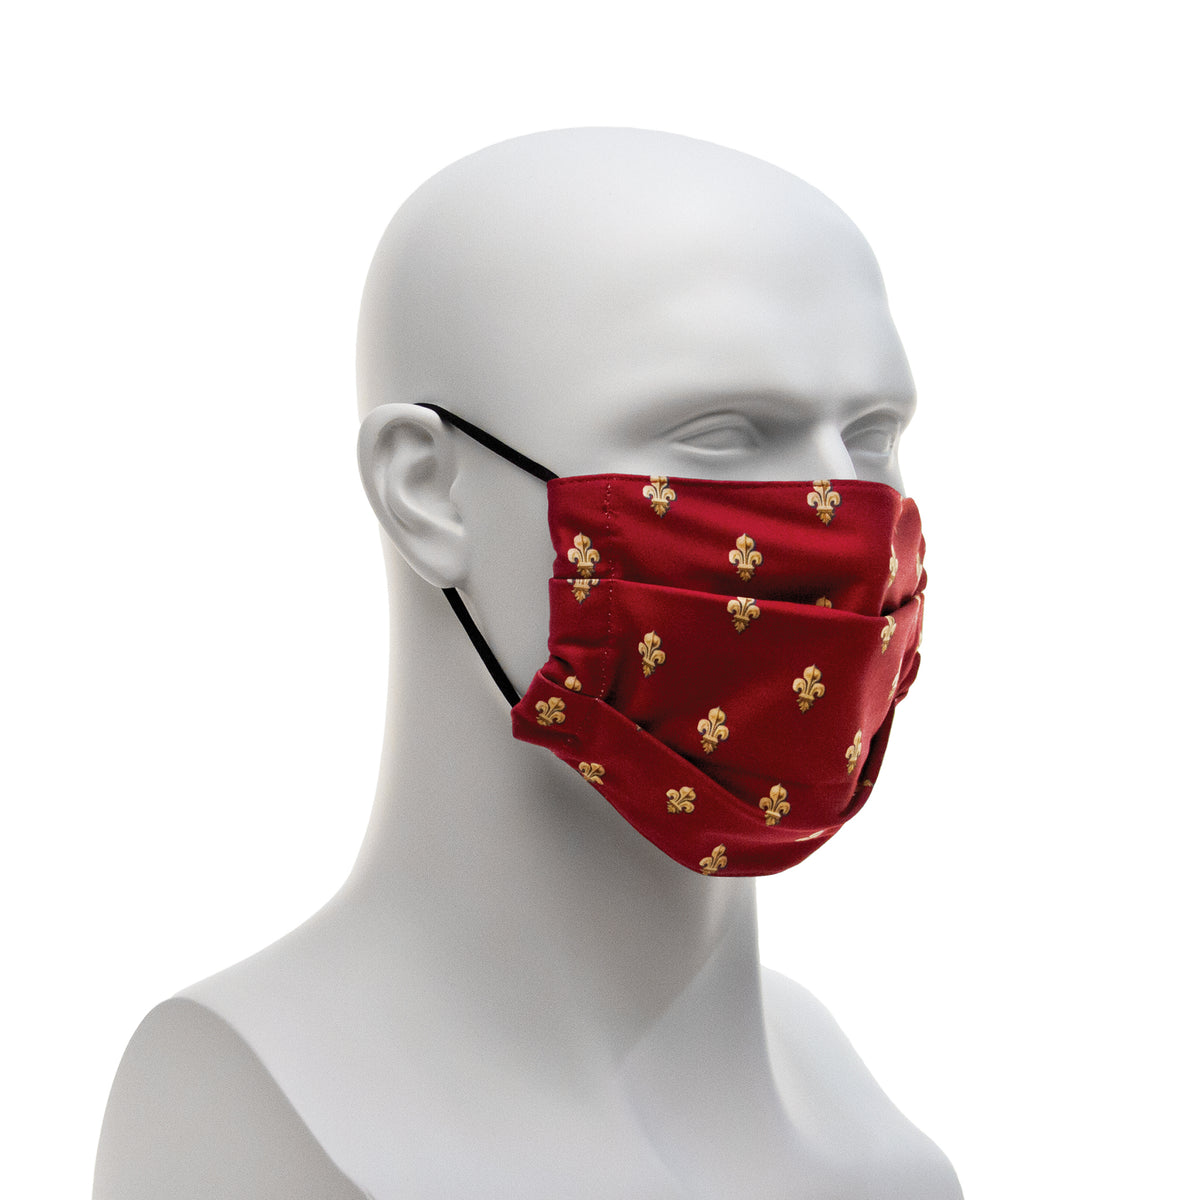 Cloth Face Covering - Maroon Fleur-de-lis Pattern